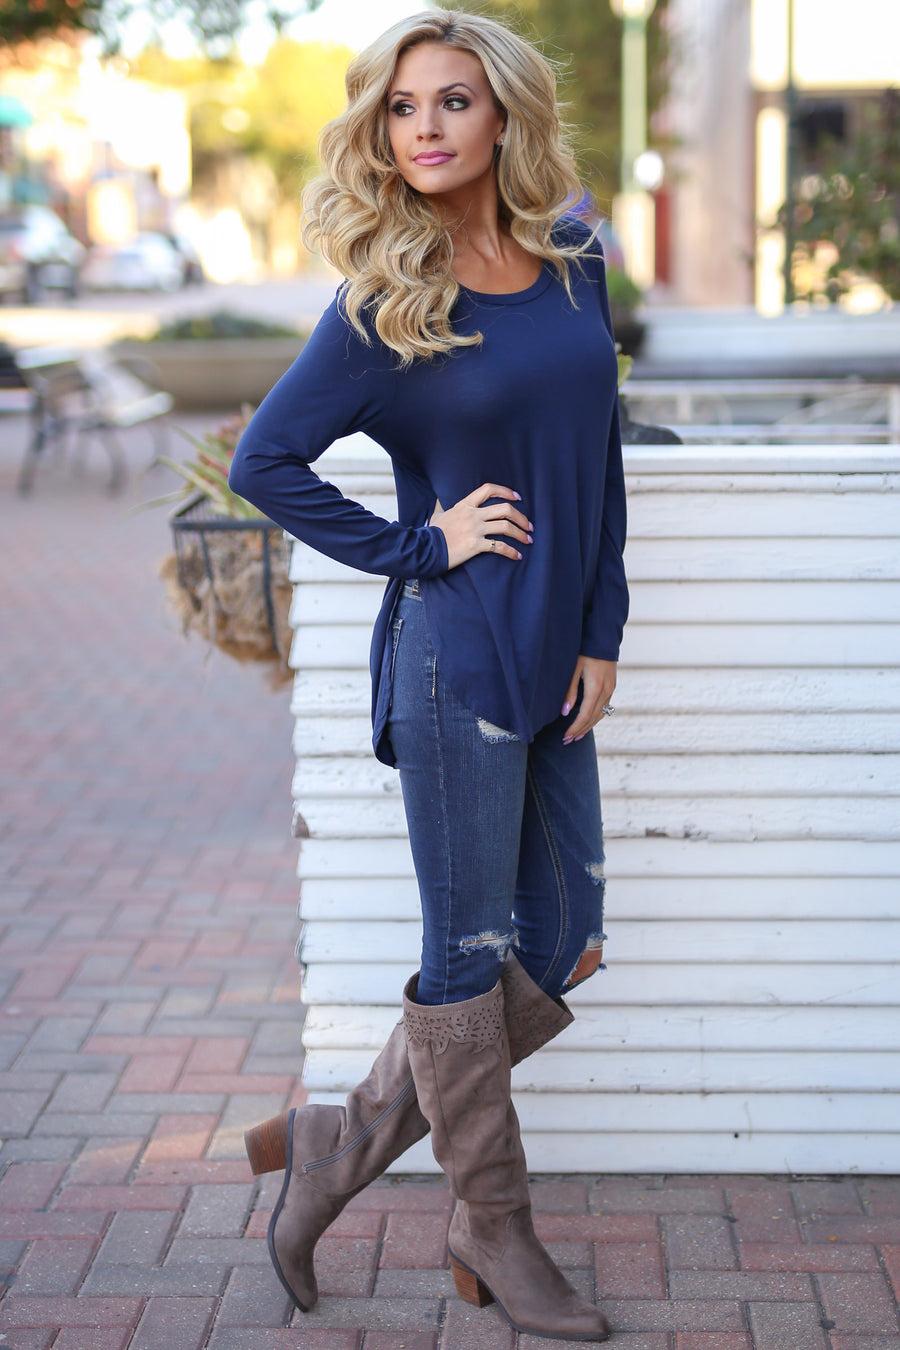 Heart Is In Montana Top - Navy long sleeve top, basics, Closet Candy Boutique 1